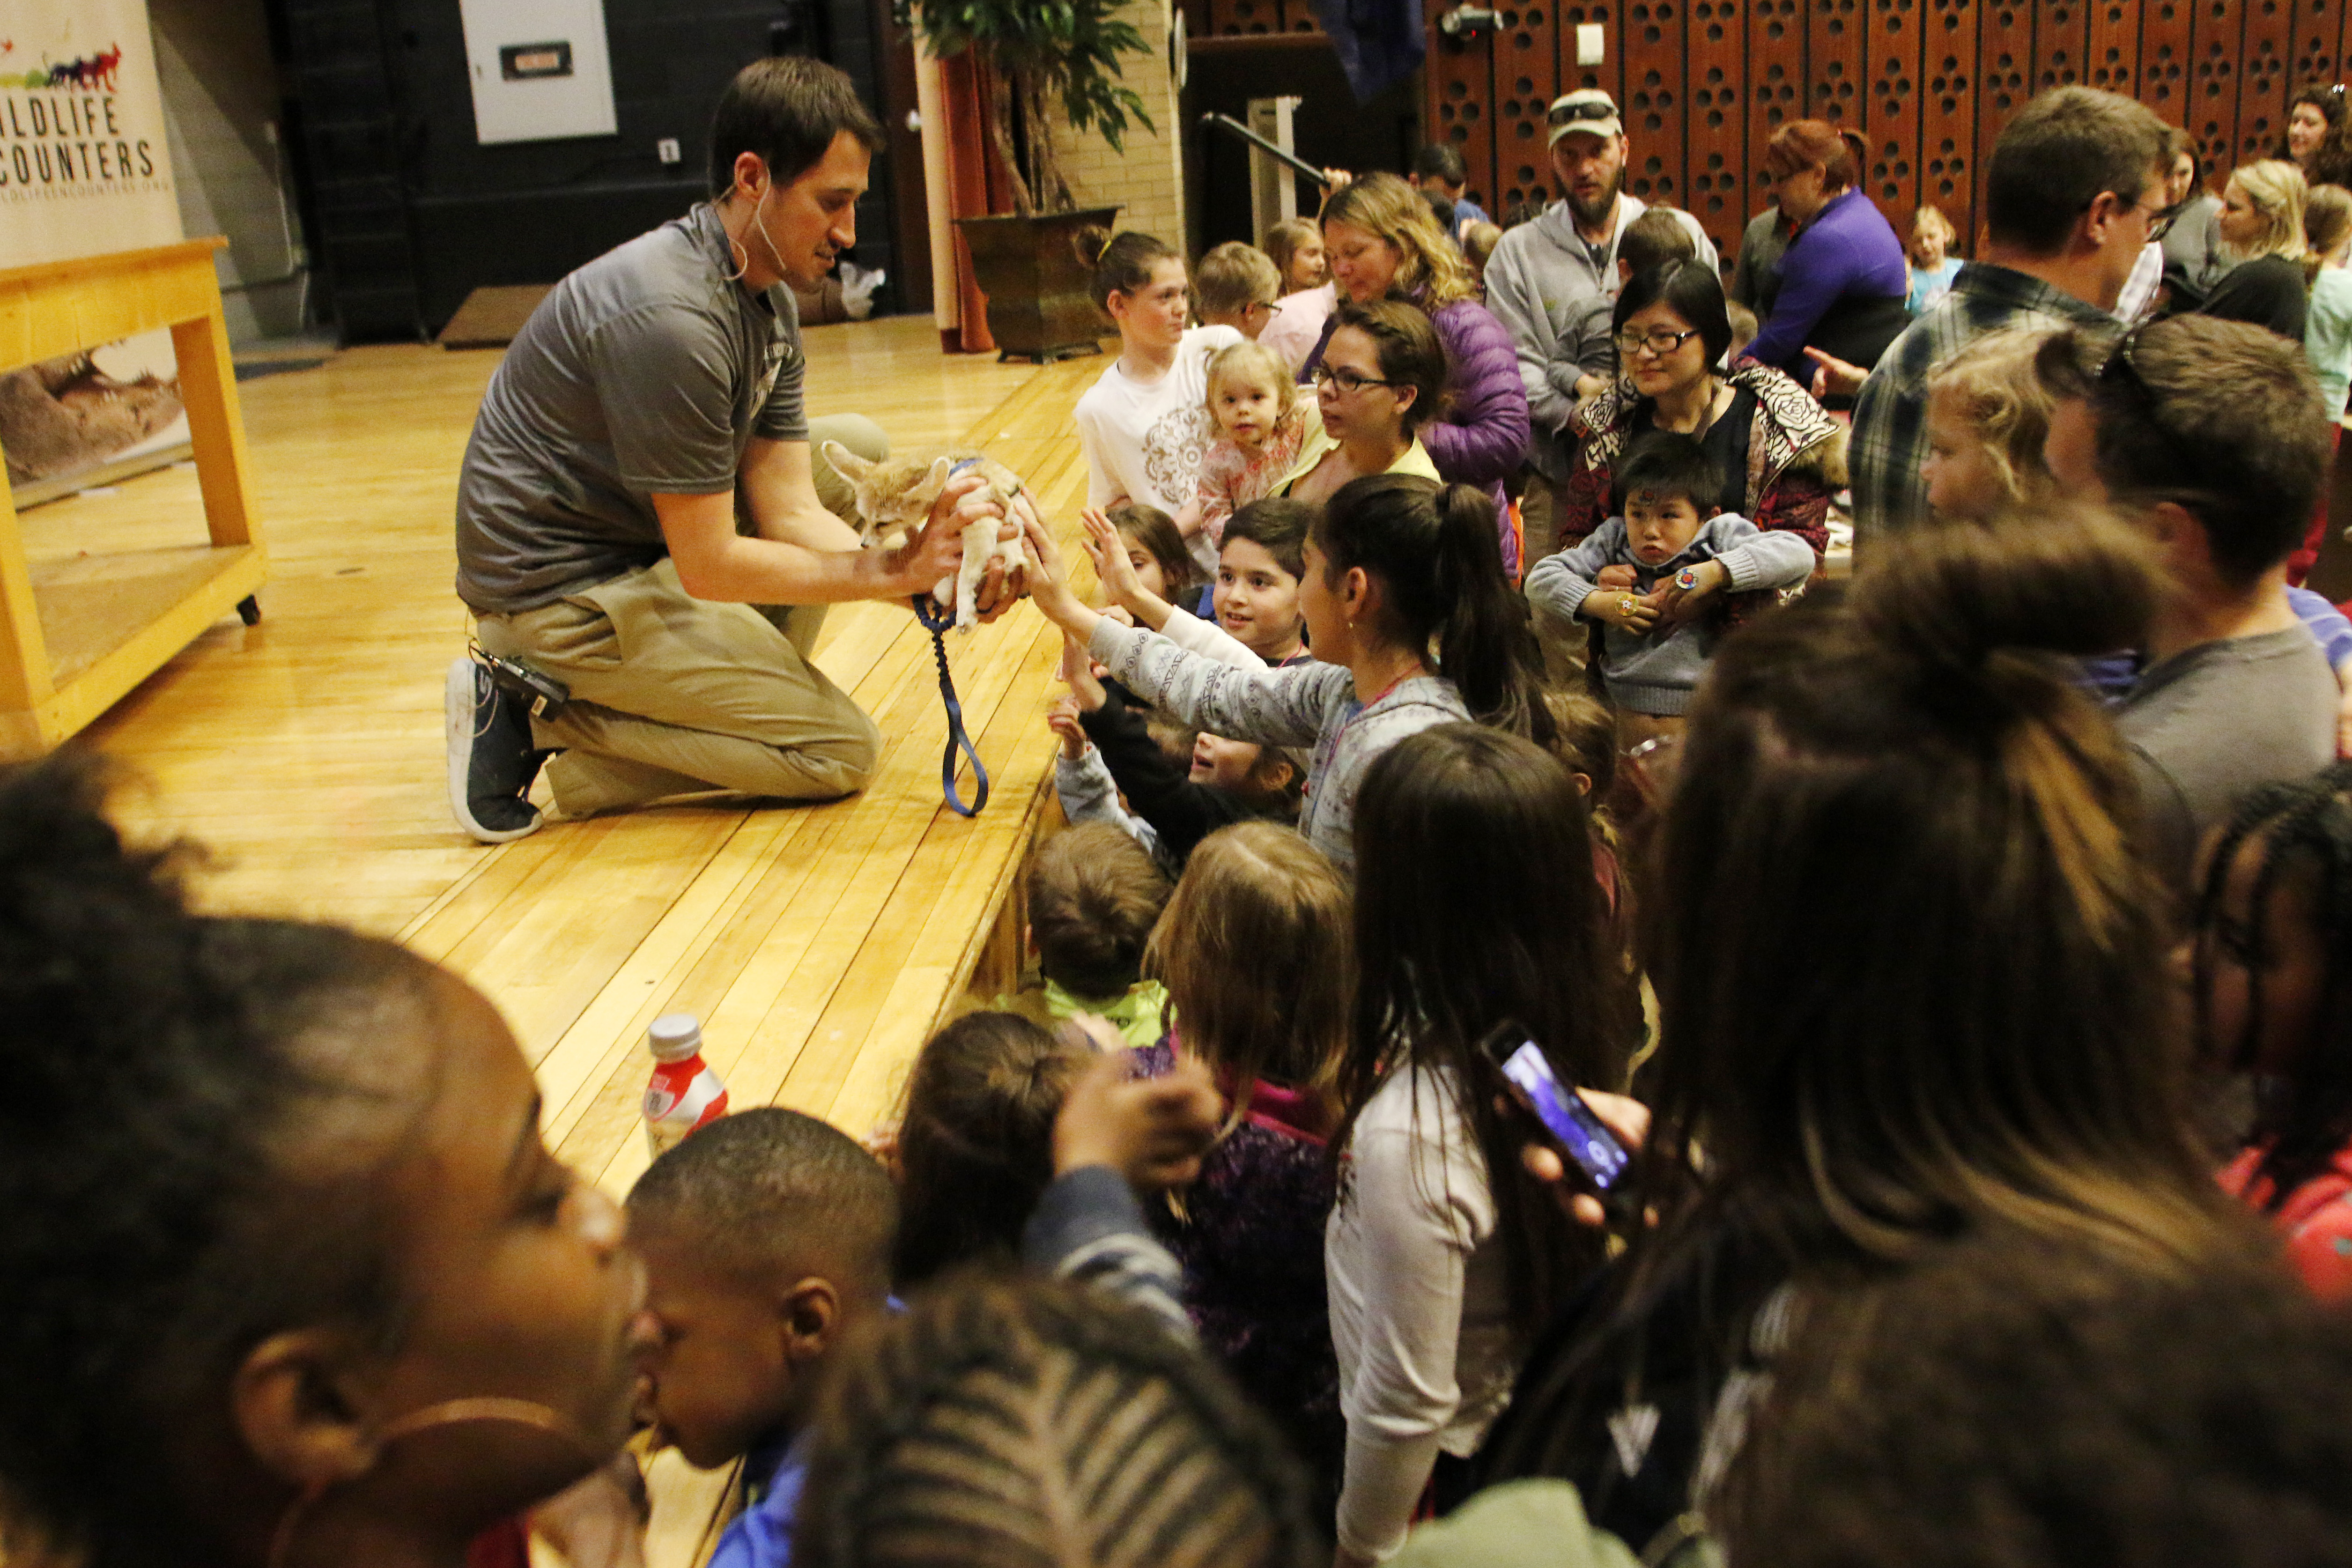 Kip Smith lets the crowd pet the fennec fox after the Wildlife Encounters educational show during the 2018 CASNR Week festivities Tuesday, April 17, 2018, at the School of Natural Resources at the University of Nebraska-Lincoln. | Natural Resources file p